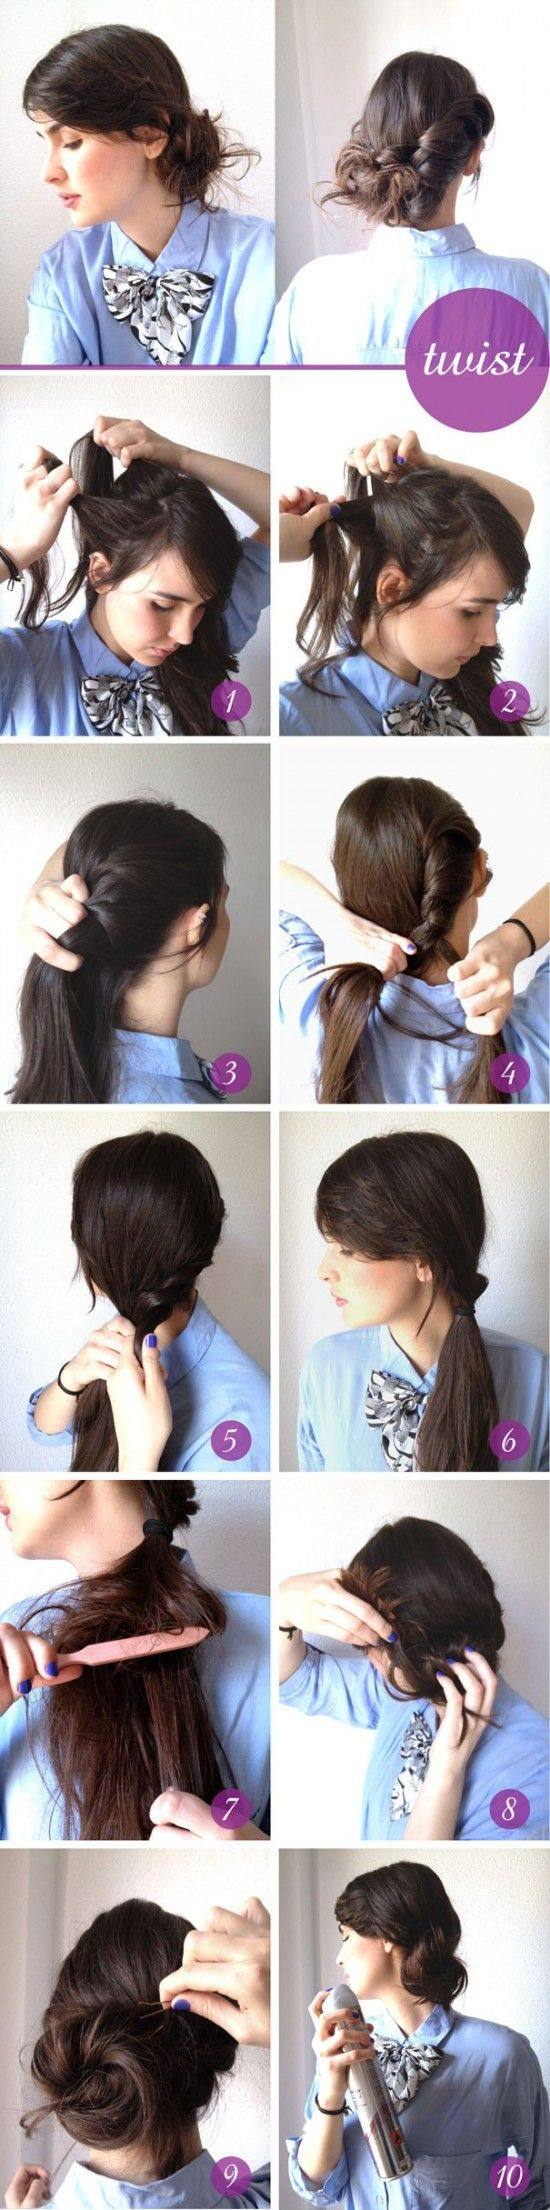 Marvelous 1000 Images About Hairstyles On Pinterest Updo Parted Bangs Hairstyles For Women Draintrainus